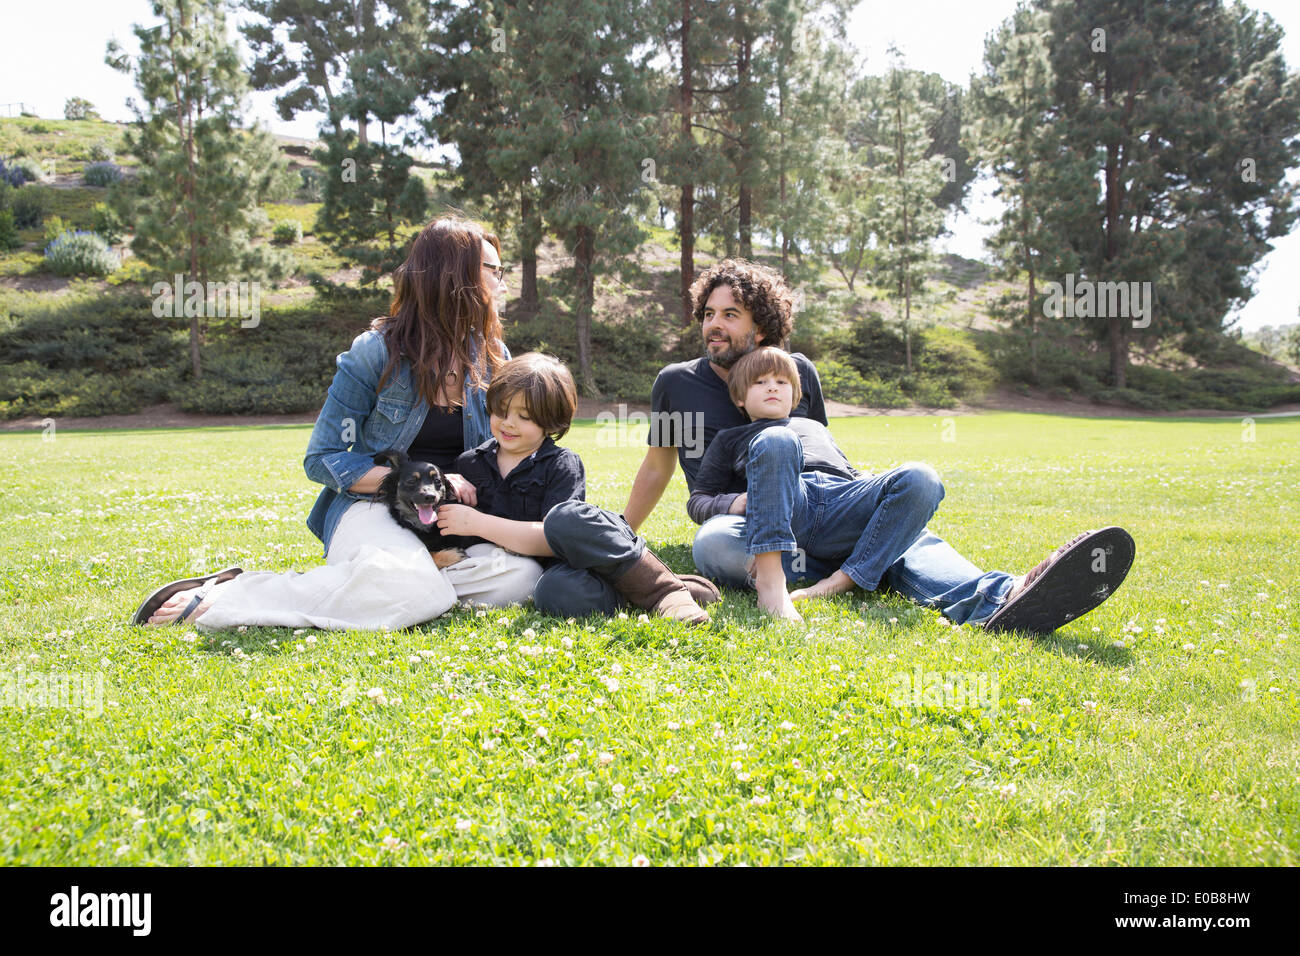 Family with two boys and dog sitting in park - Stock Image